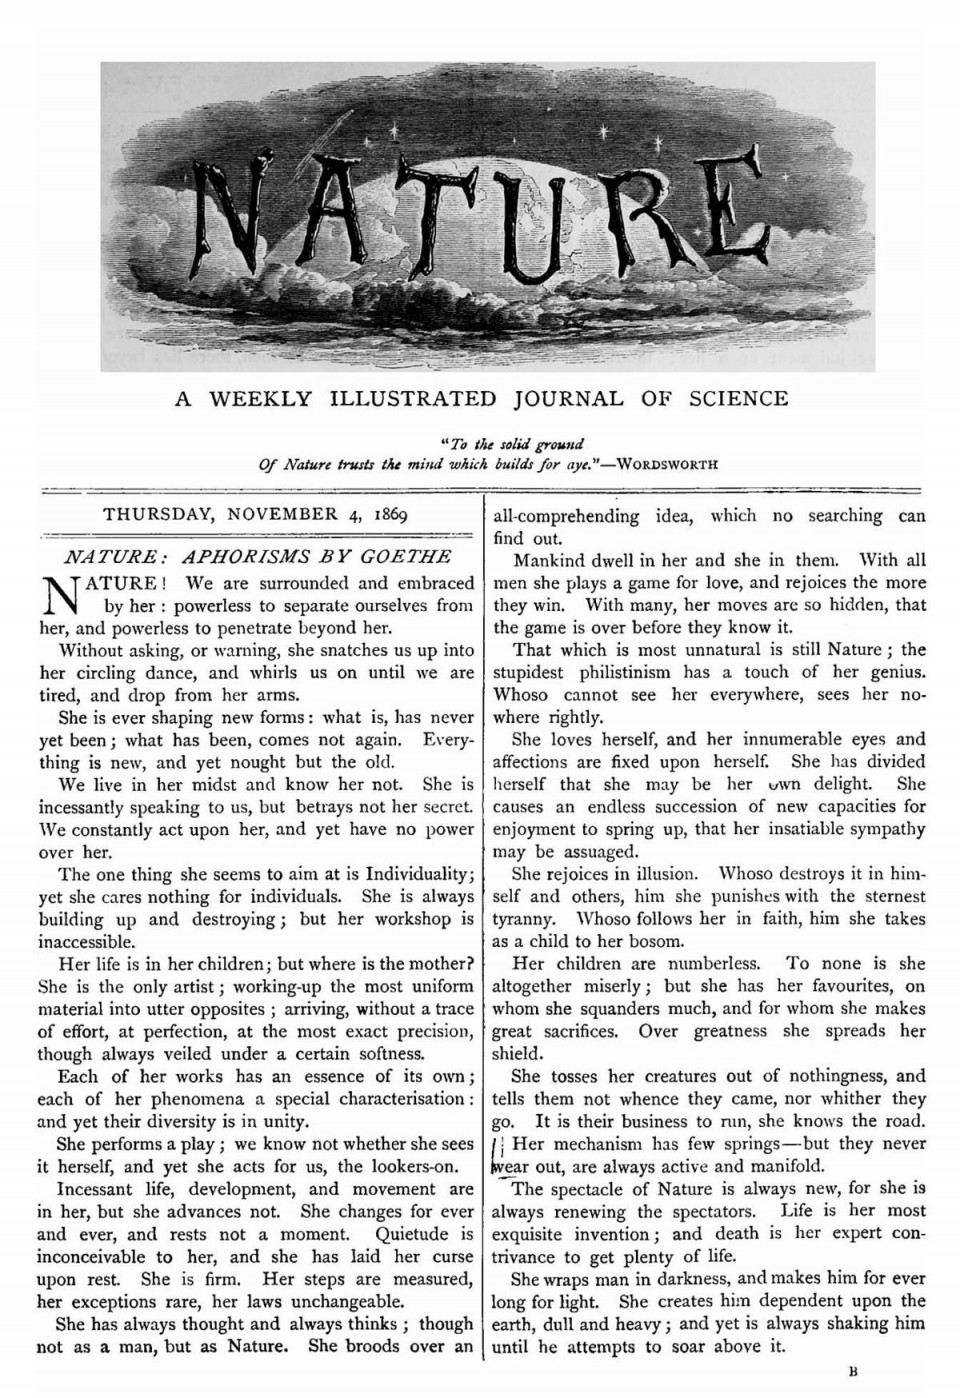 005 Best Journals To Publish Research Papers In Computer Science Paper 1200px Nature Cover2c November 42c 1869 Astounding 960